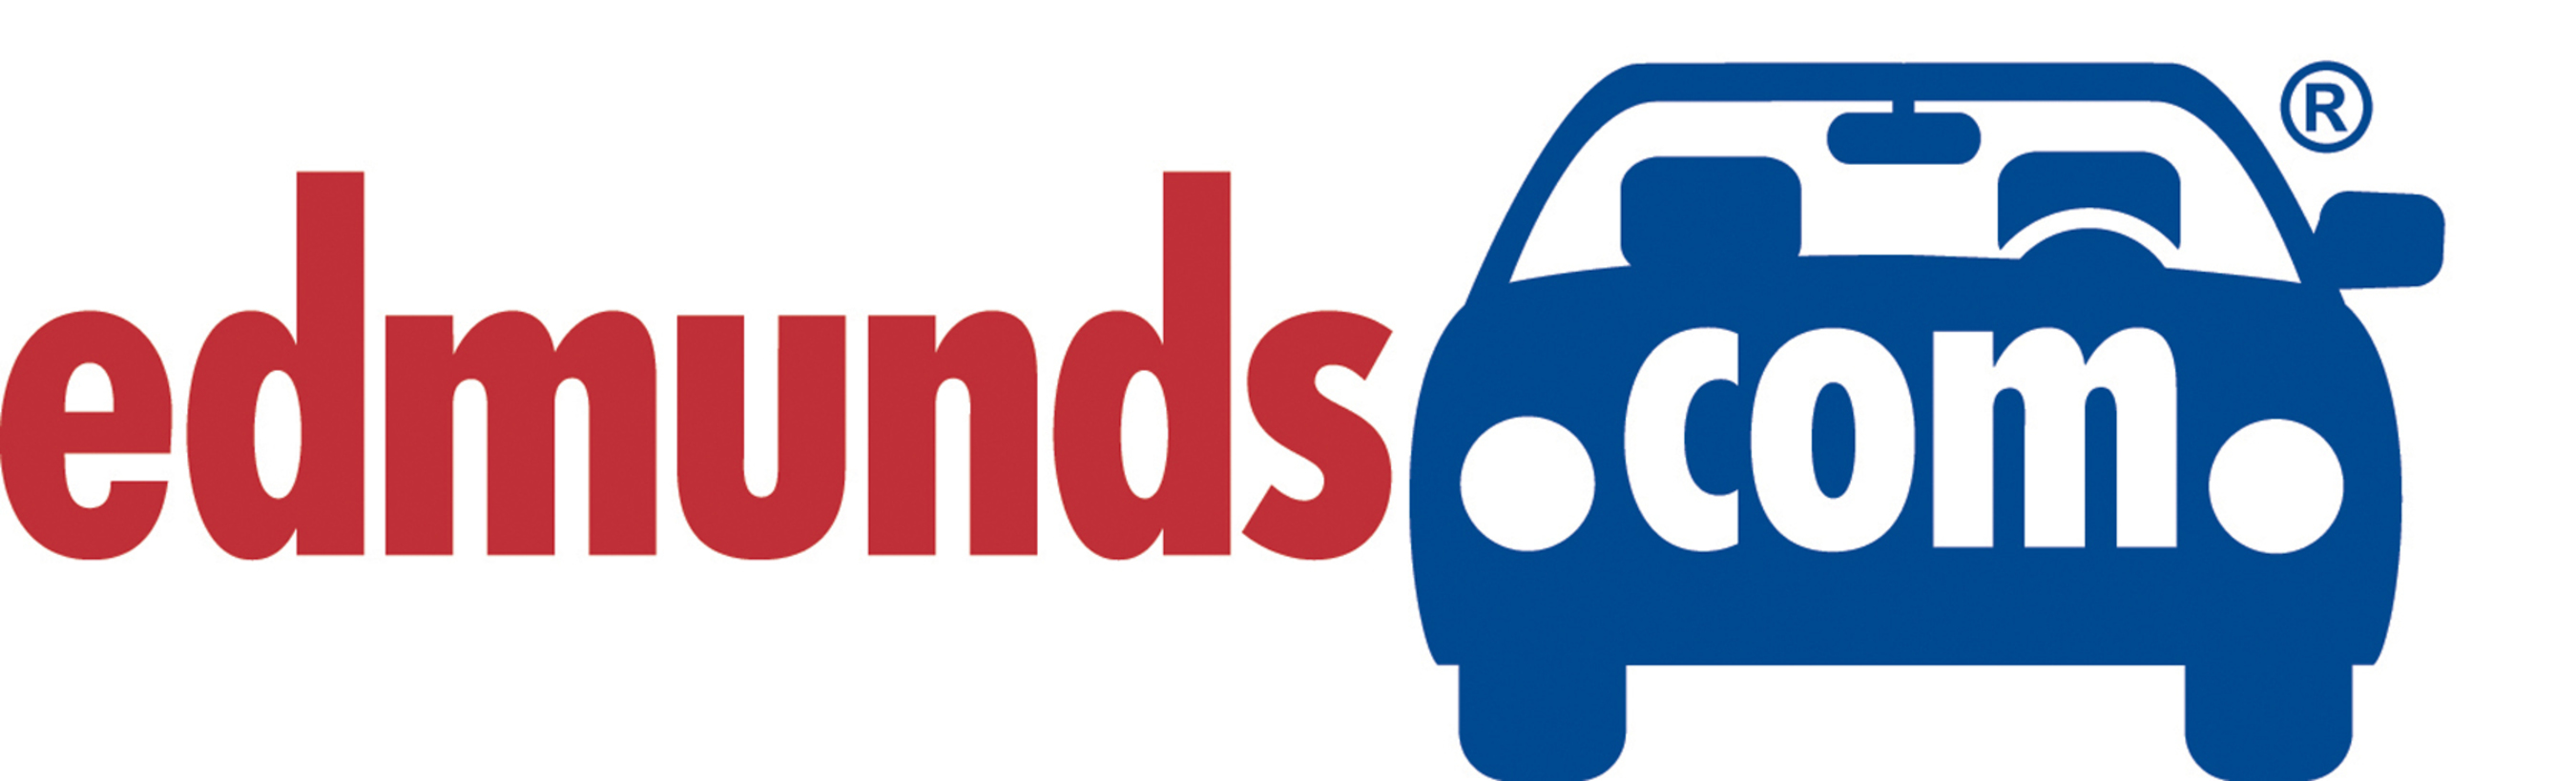 Edmunds.com Updates Mobile Car Shopping App with Cutting-edge Messaging Platform